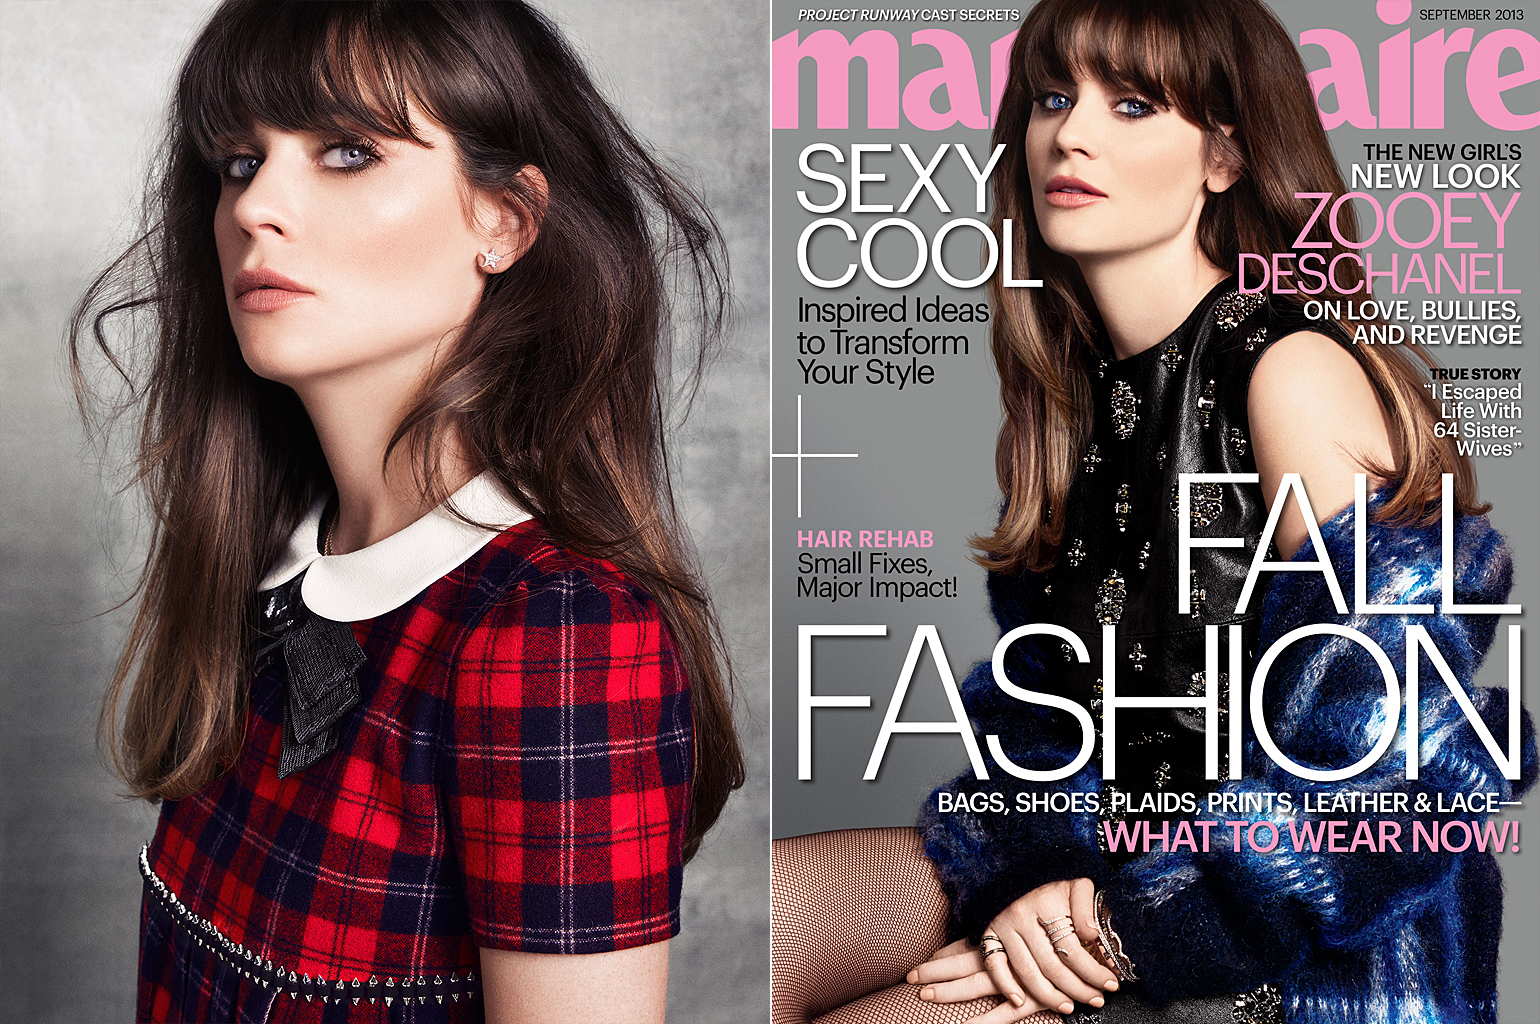 Zooey Deschanel covers the September issue of Marie Claire (Tesh/Marie Claire)